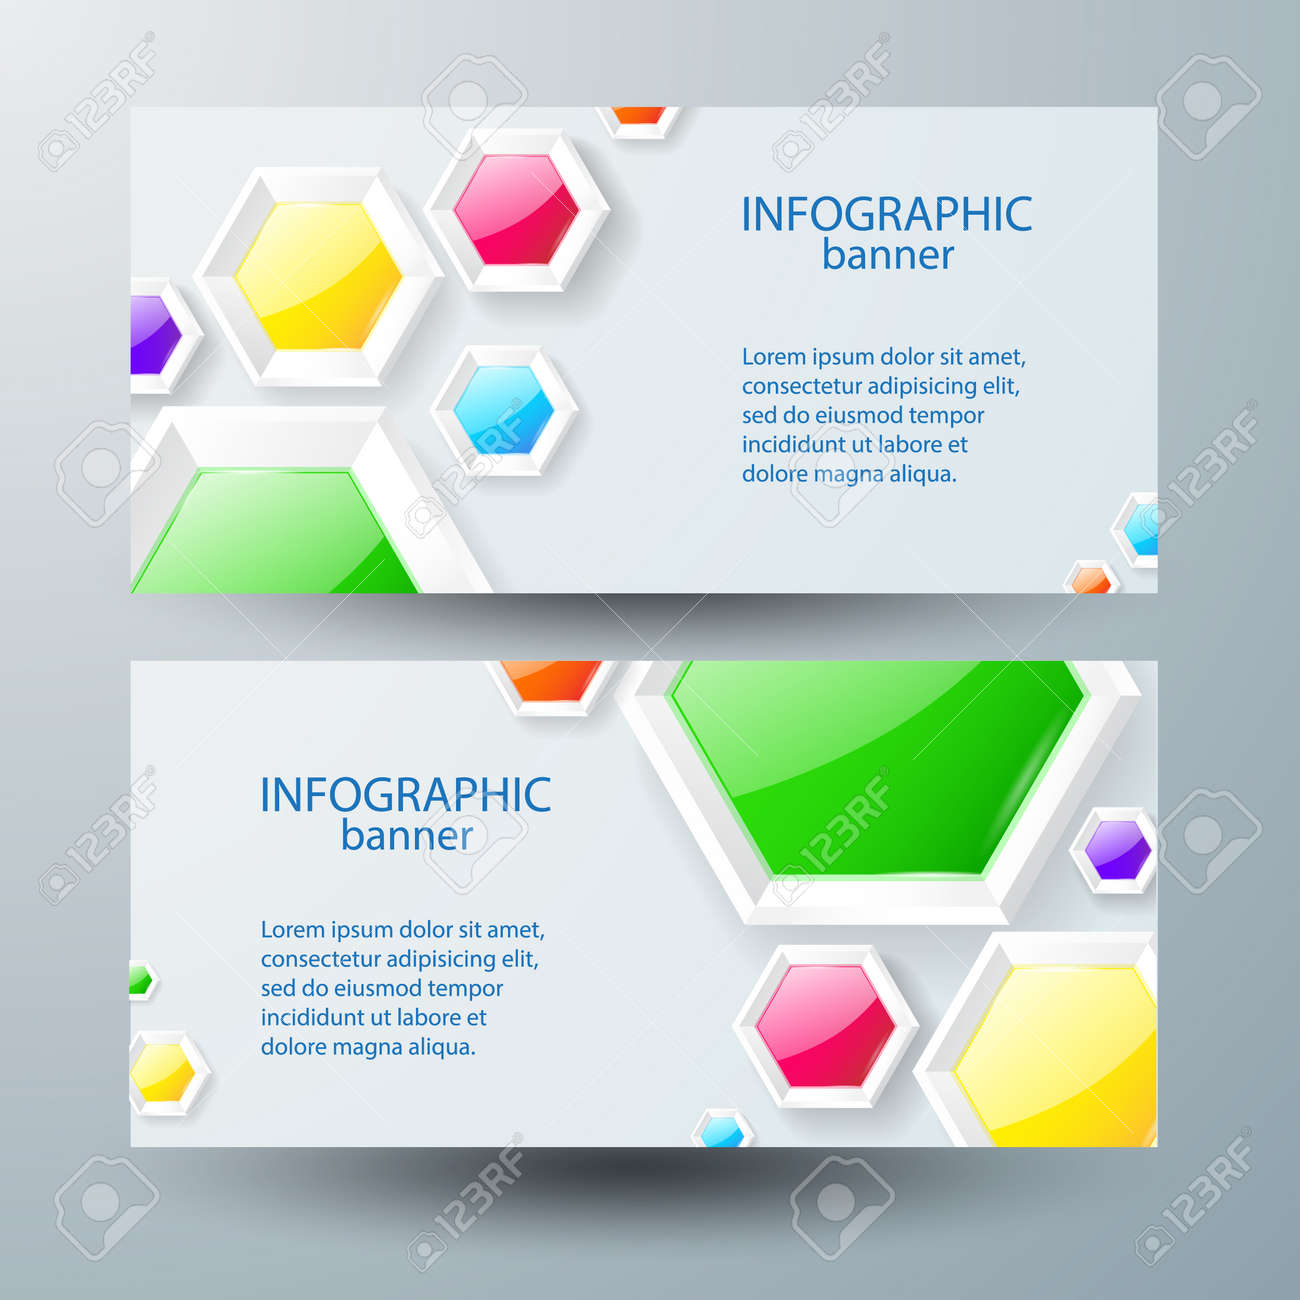 Web infographic horizontal banners with text and colorful glossy hexagons on gray background isolated vector illustration - 166896214